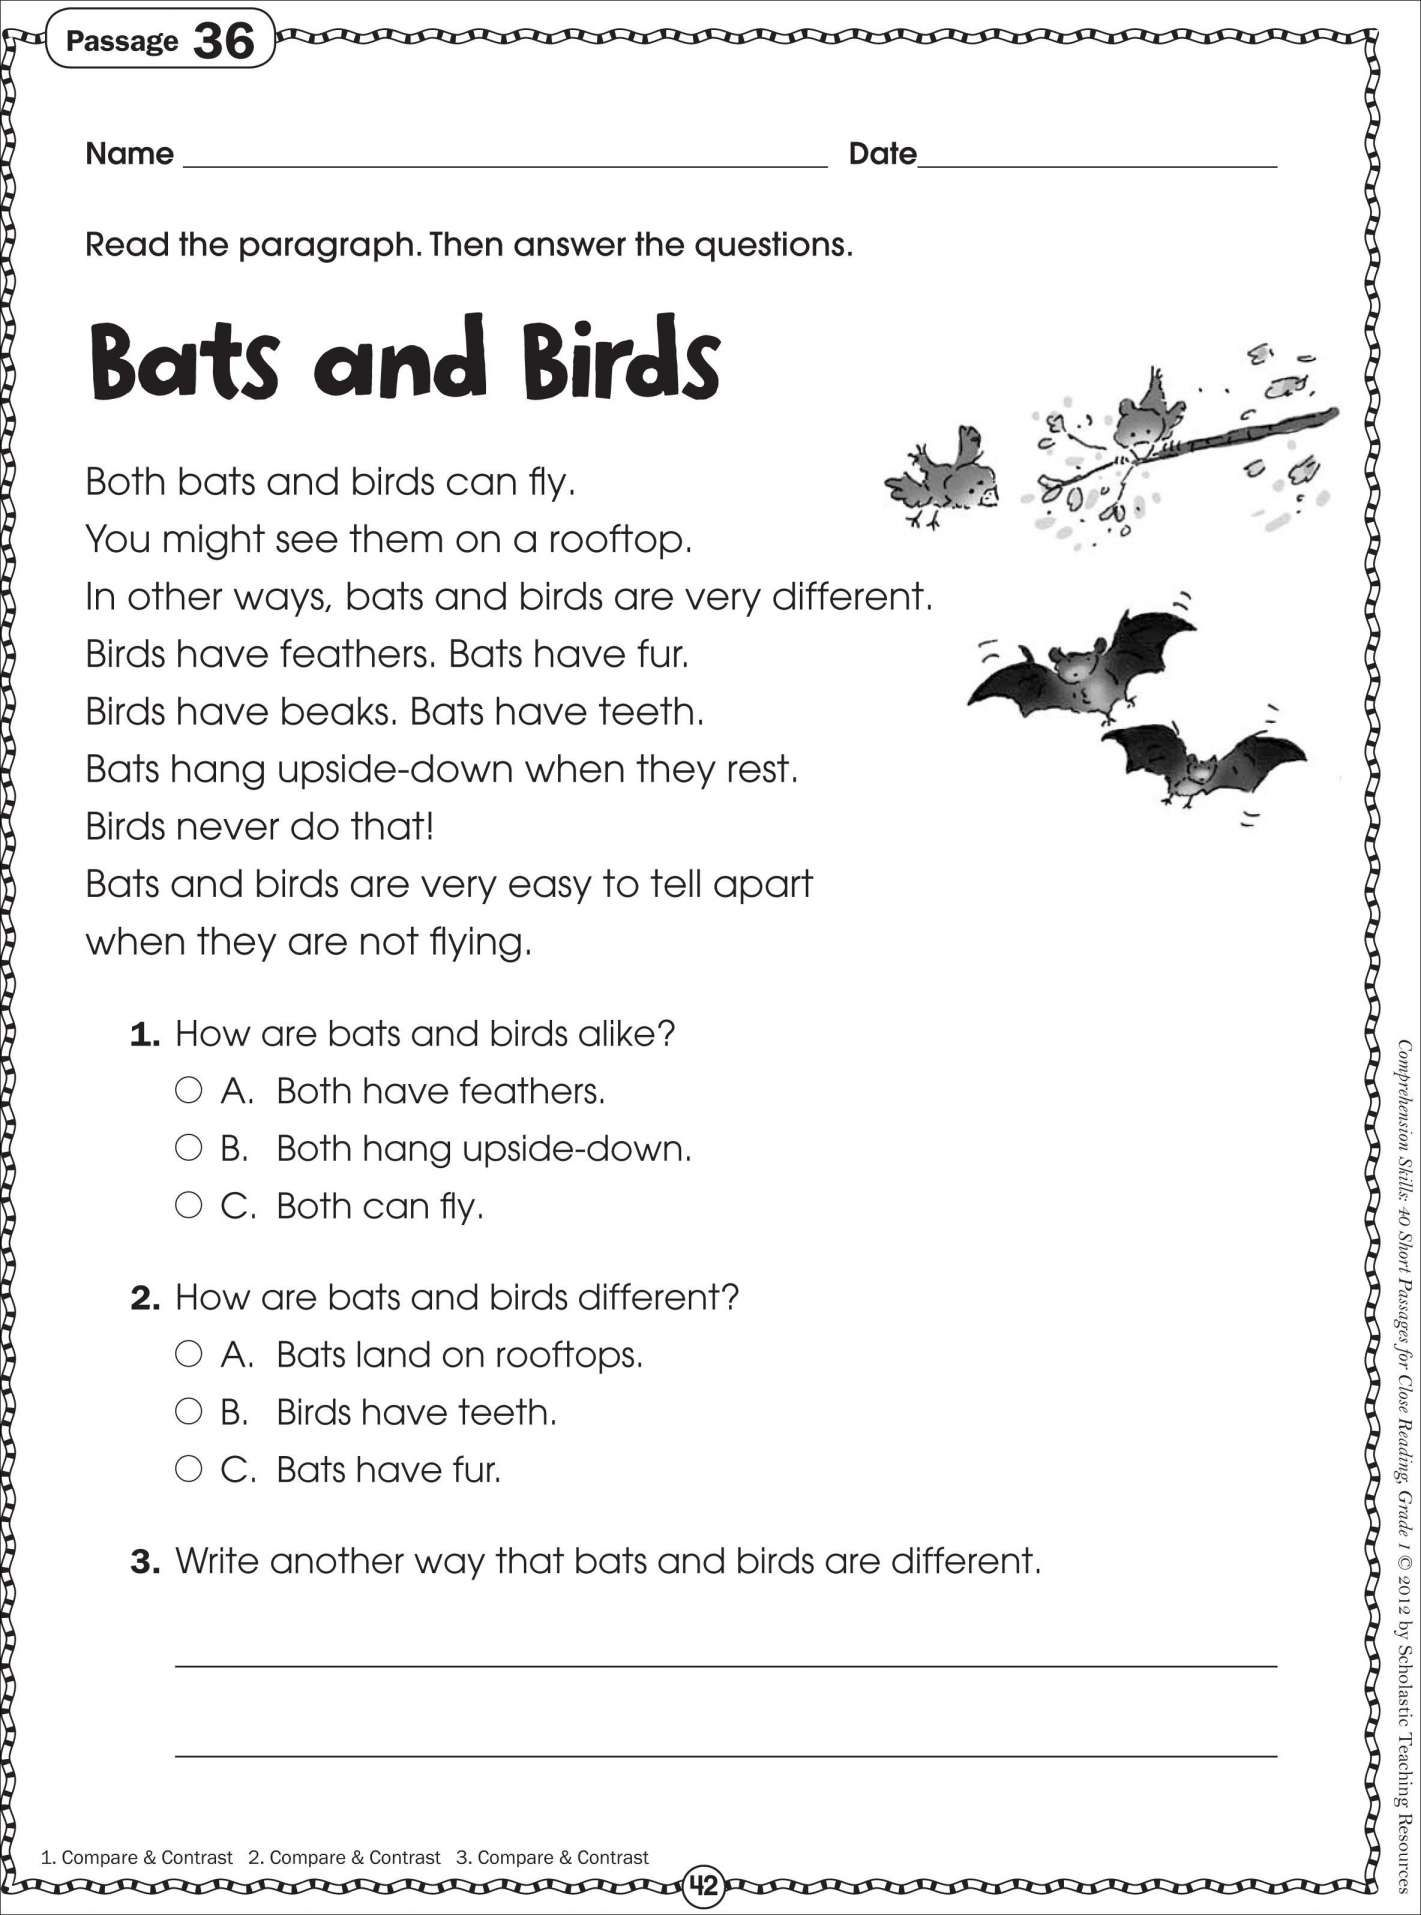 hight resolution of 7 Reading Comprehension Worksheets 5th Grade - Free Templates